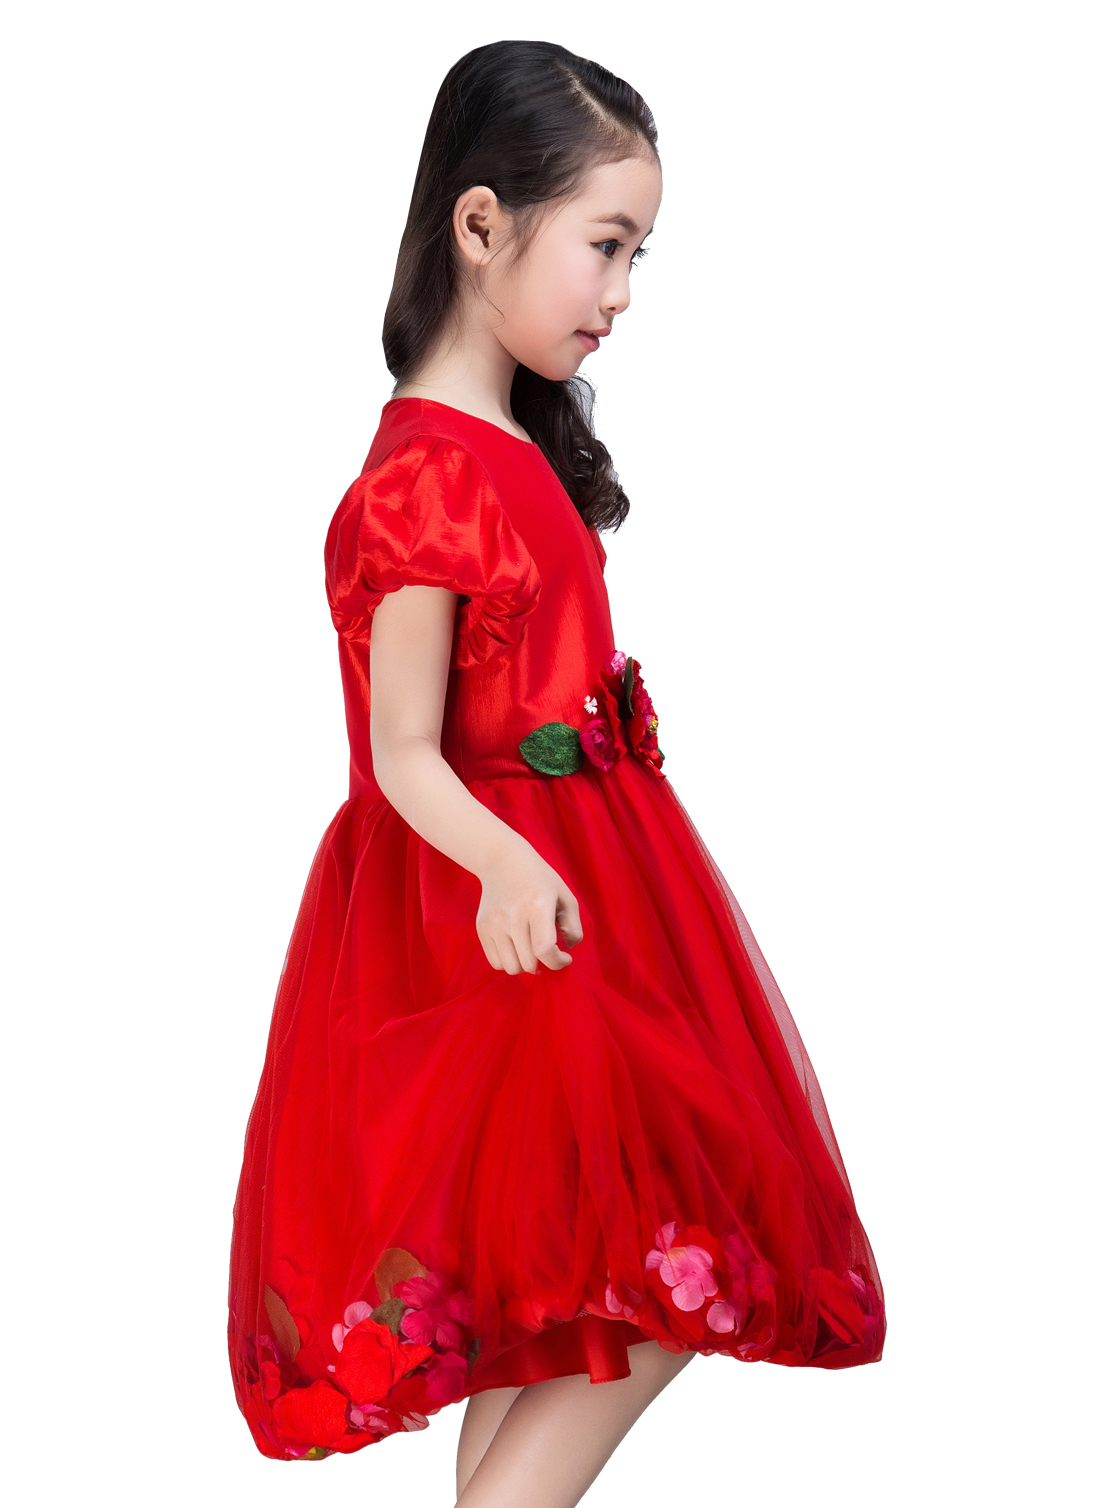 Emondora Flower Girl Dress Princess Formal Birthday Party Dresses